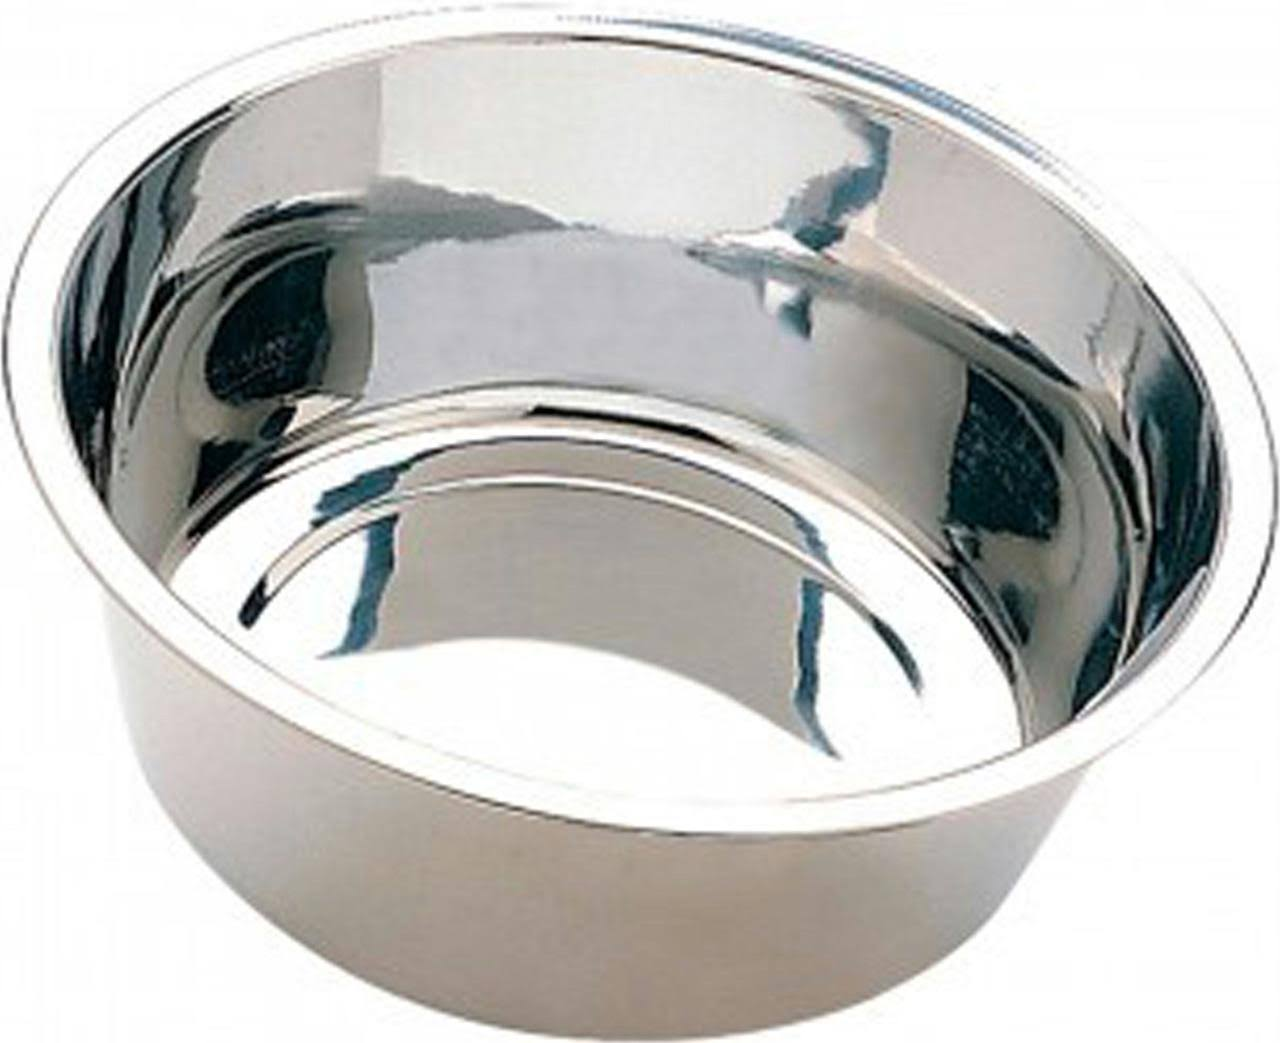 Ethical Stainless Steel Mirror Pet Dish - Stainless Steel - 3 Quart